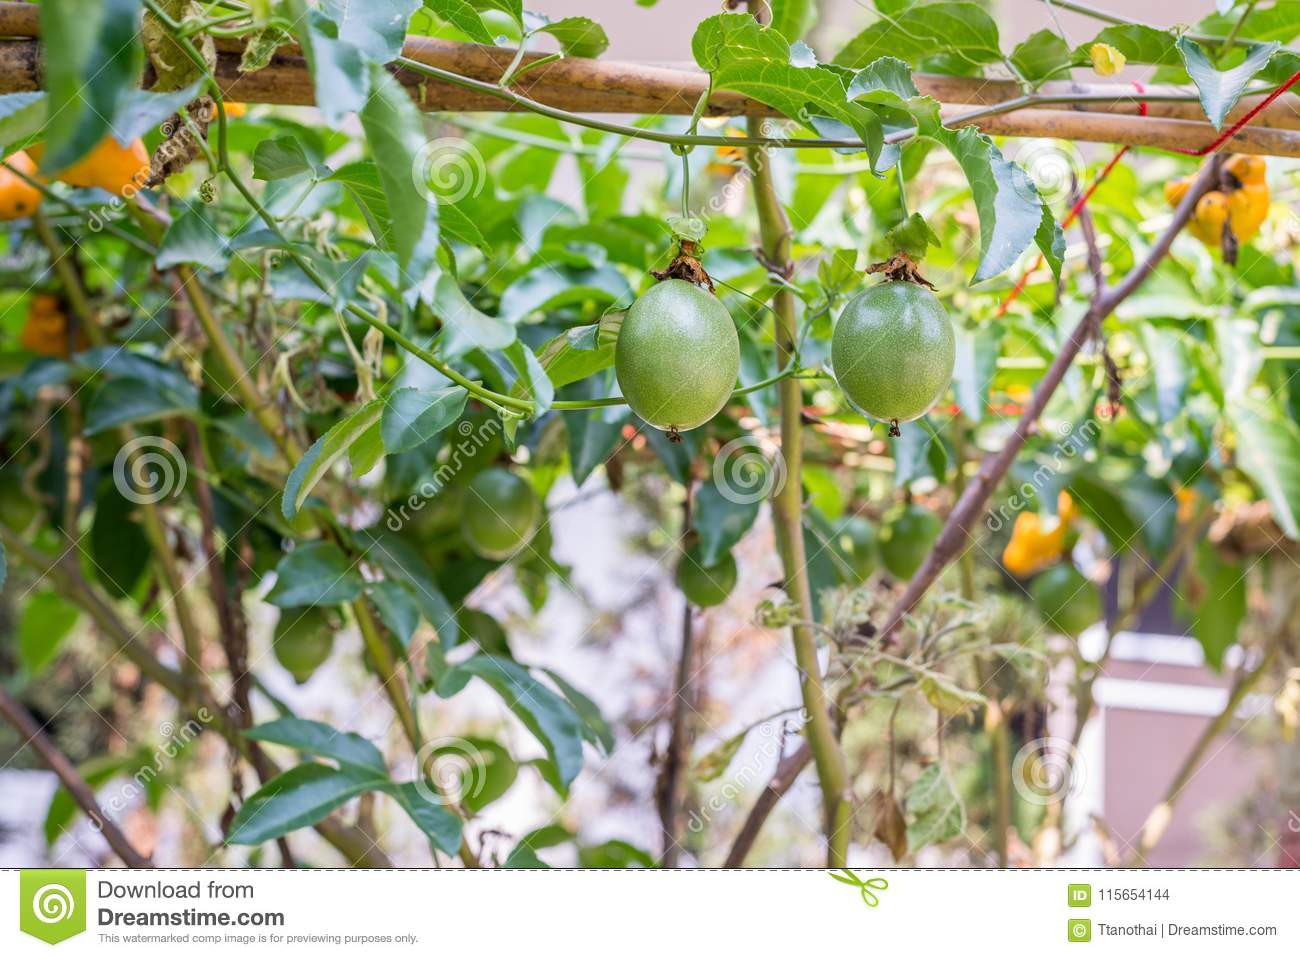 Passion Fruit Tree Garden Stock Photos - Royalty Free Pictures